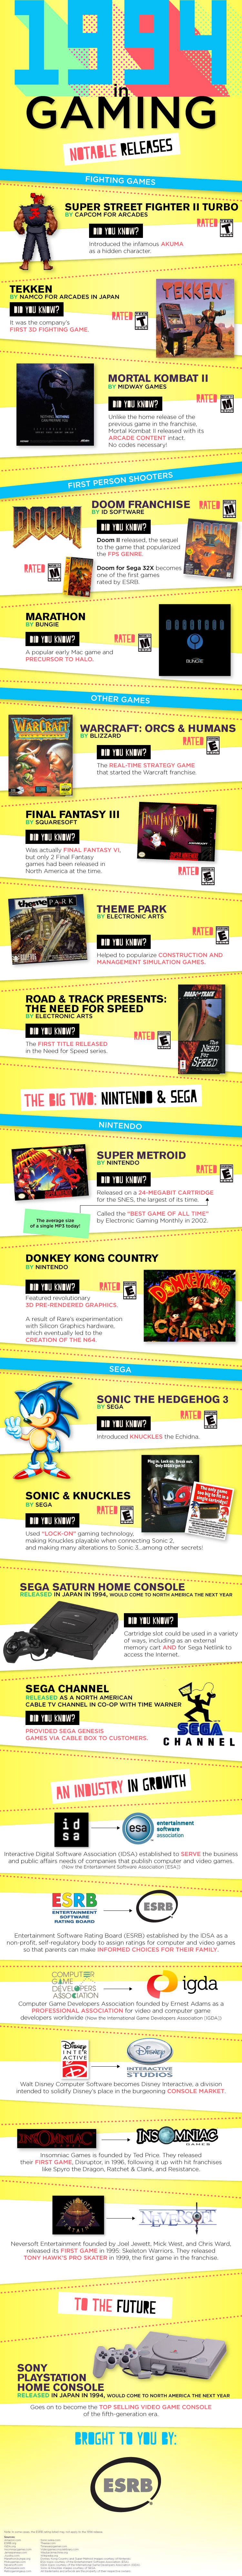 1994 Gaming Infographic